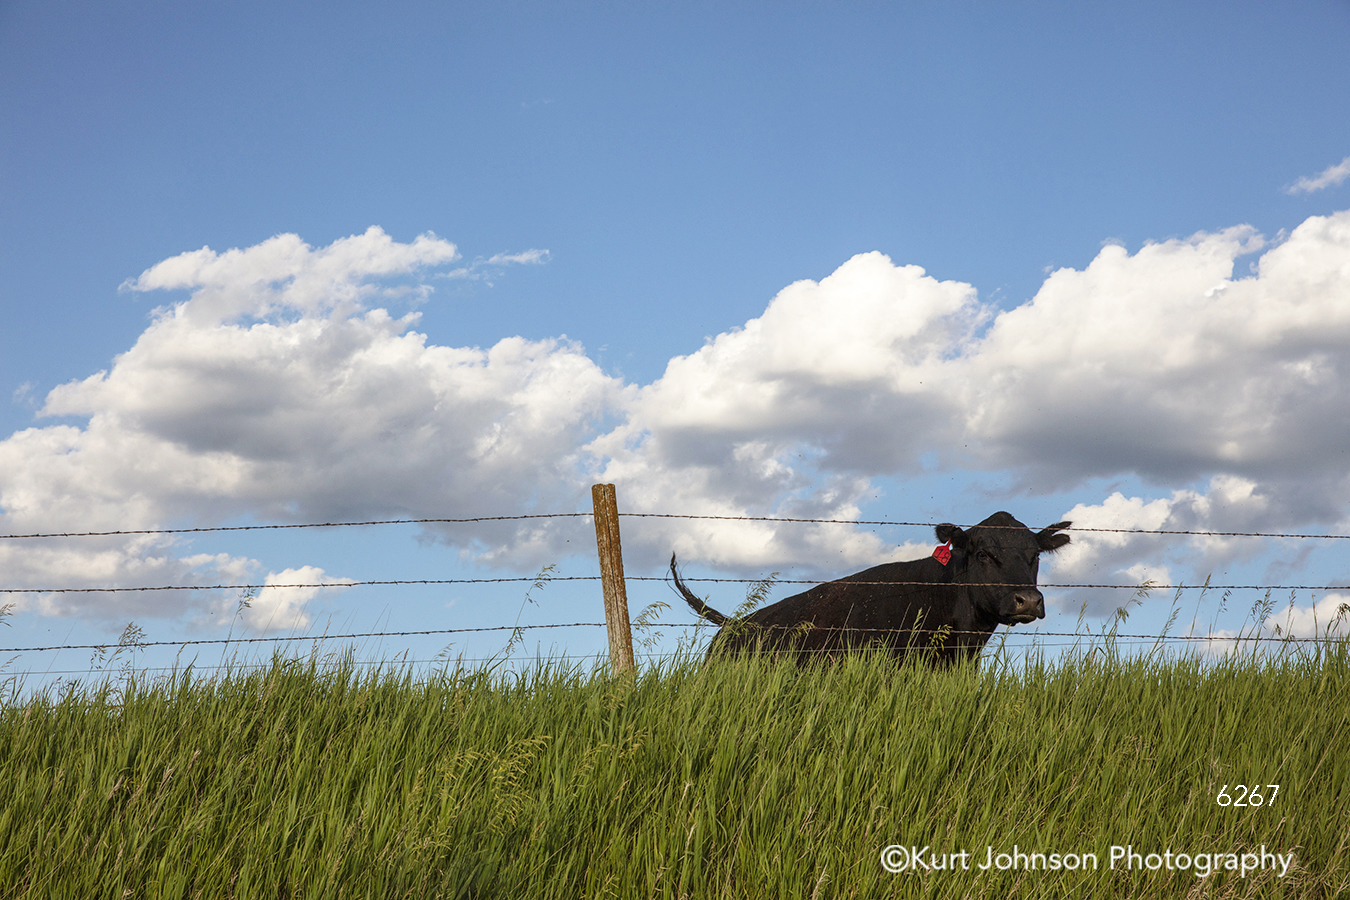 midwest landscape cow steer bull farm green grass field blue sky clouds wire rustic fence animal wildlife